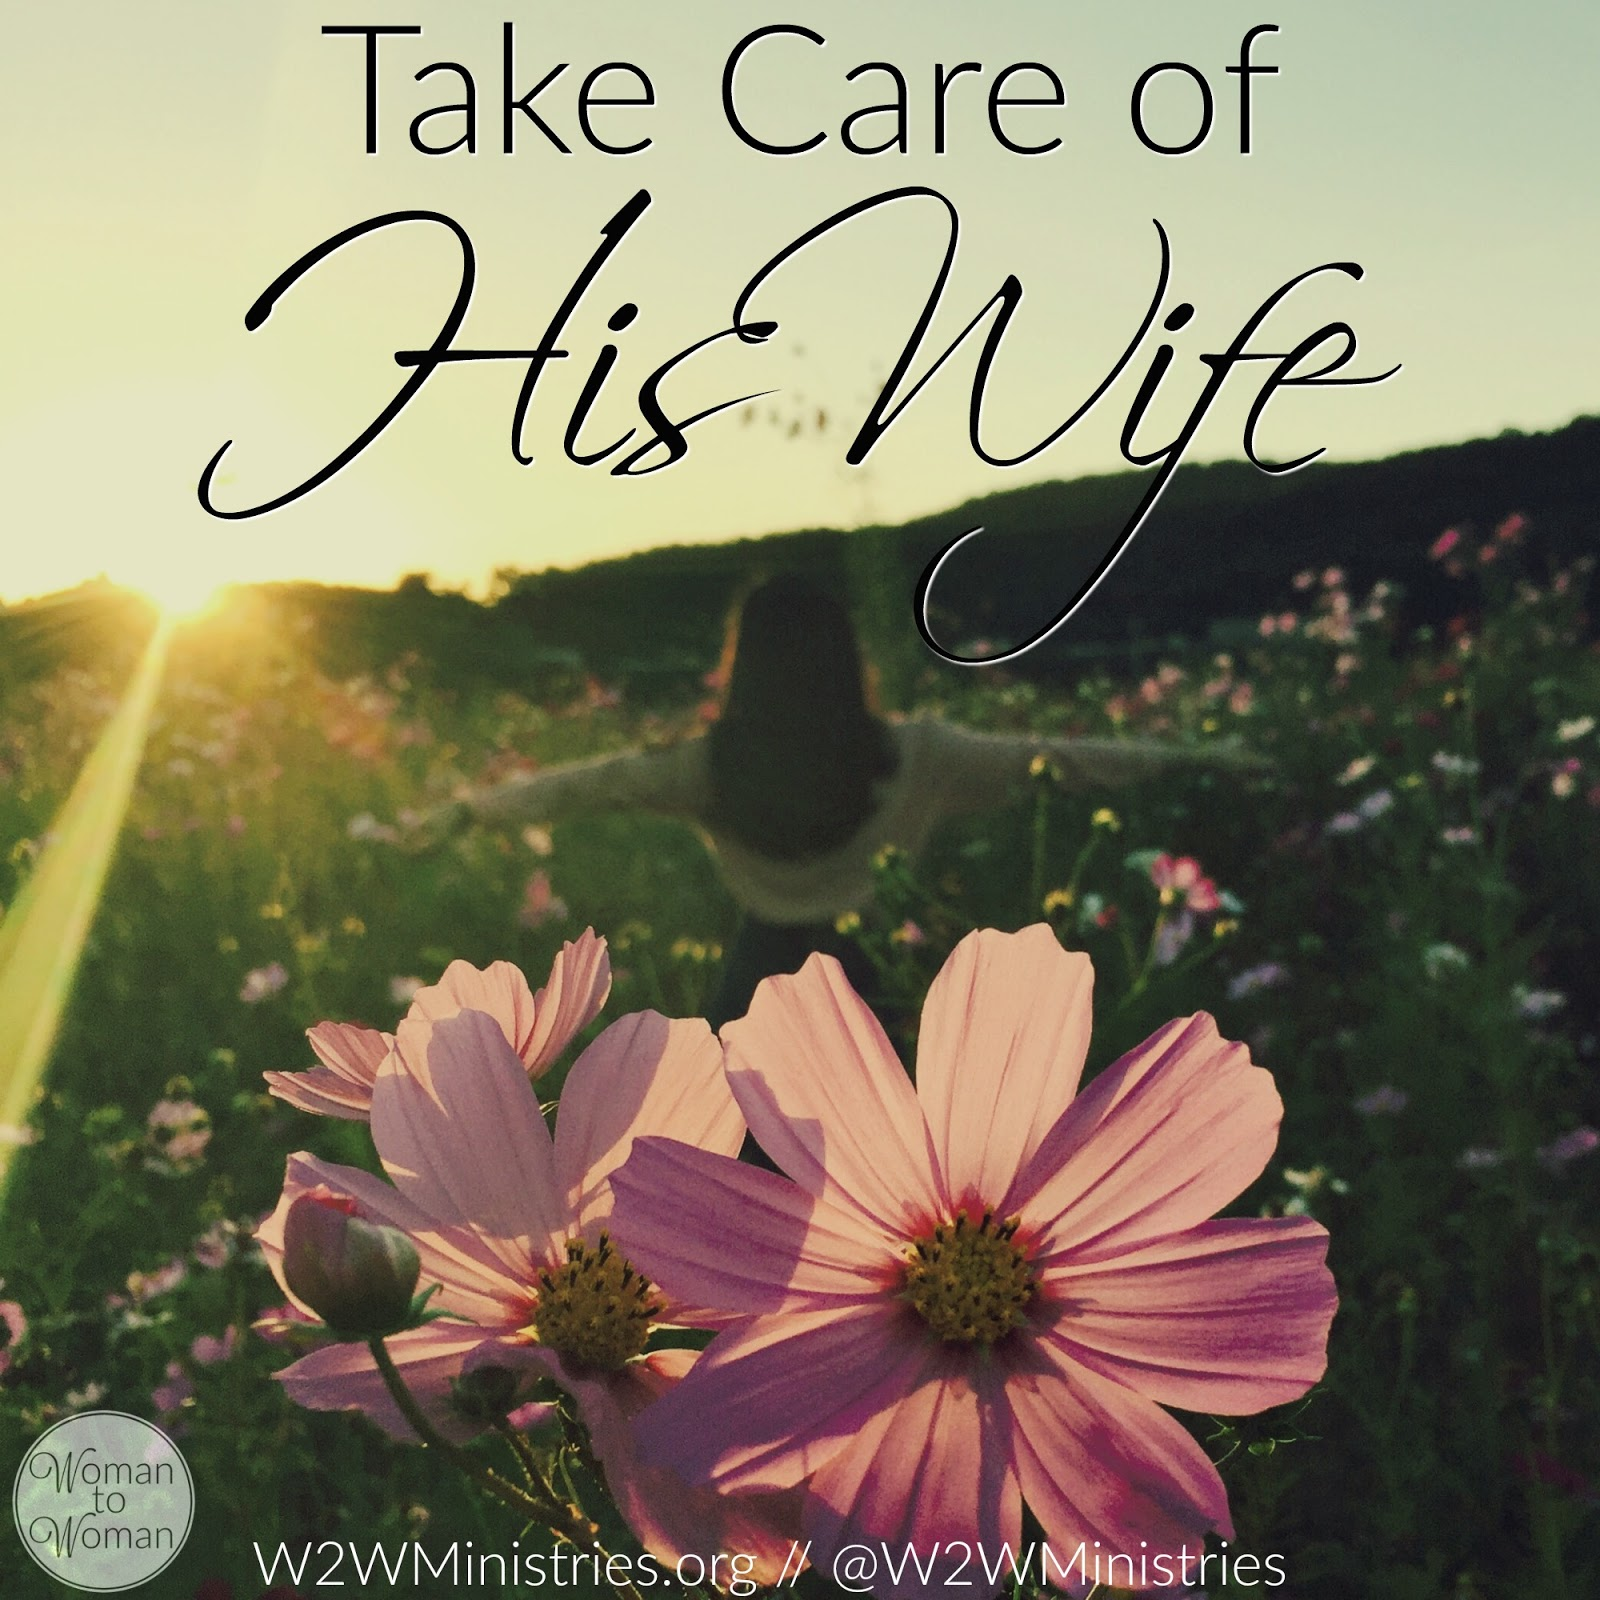 Woman To Woman Take Care Of His Wife-4618